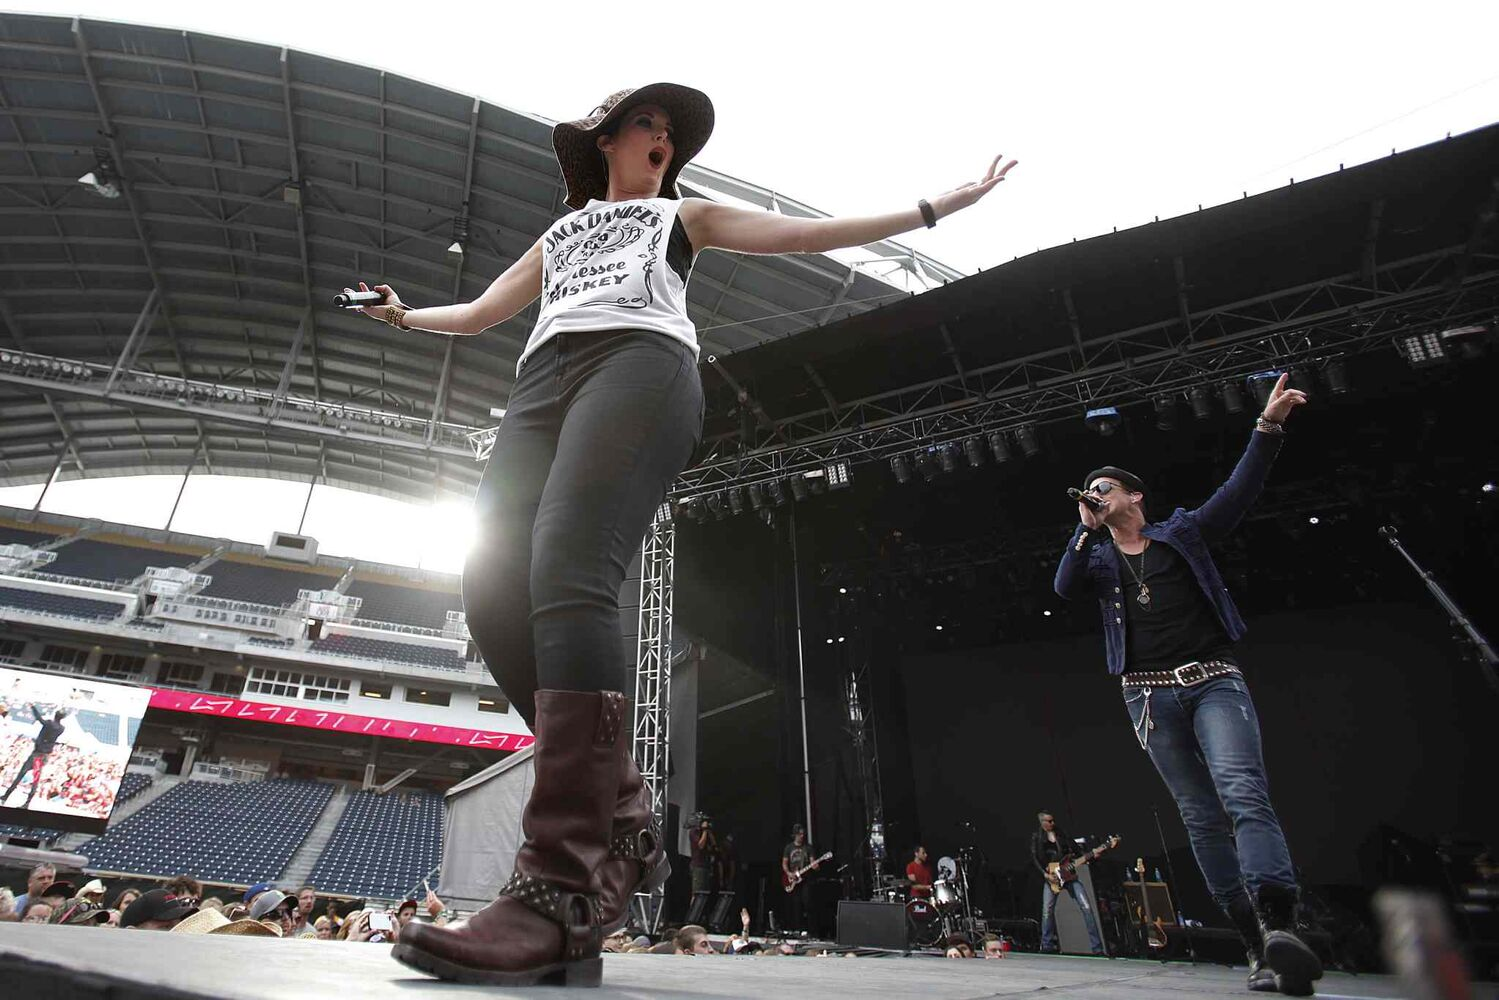 Thompson Square performs at Prairie Jam. (JOHN WOODS / WINNIPEG FREE PRESS)